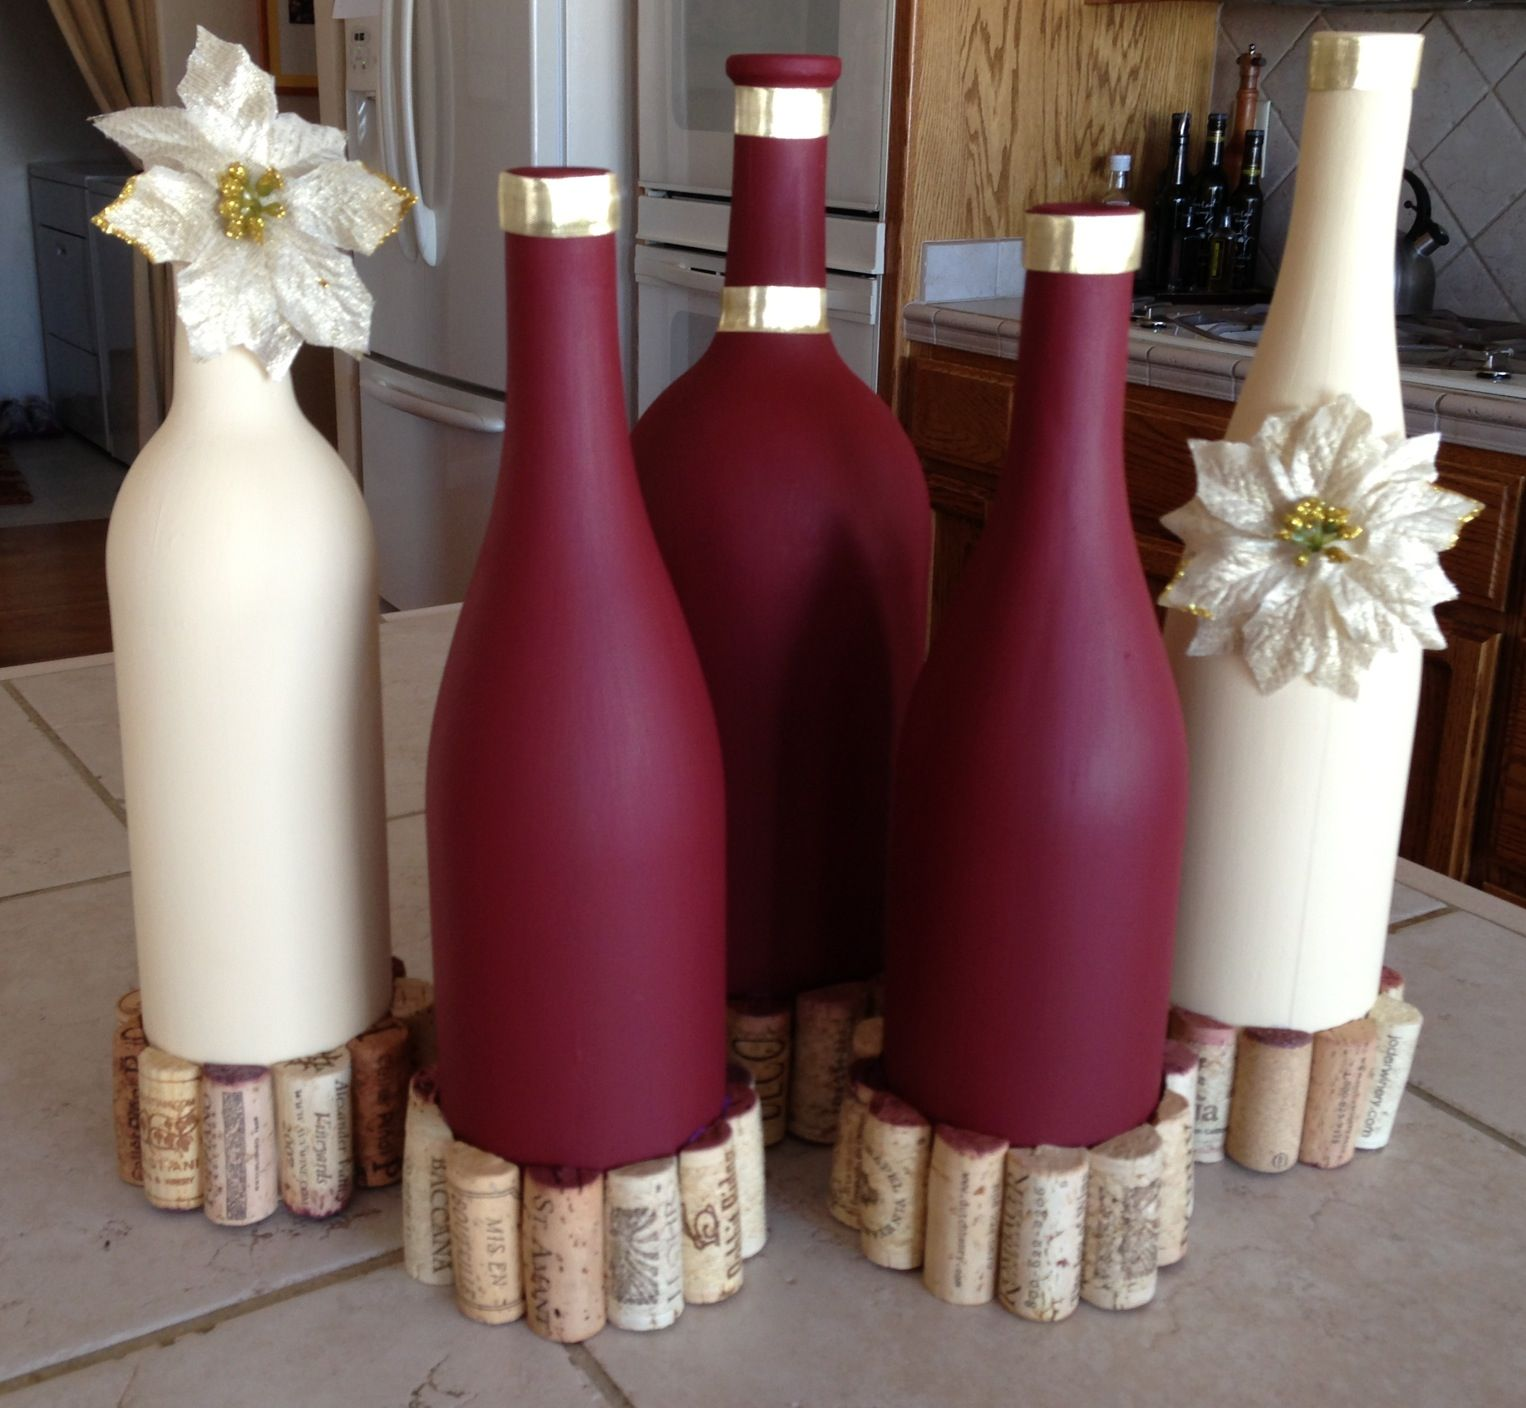 How To Decorate Wine Bottles Love The Two Colors Togetheri Already Gave The Cream Wall